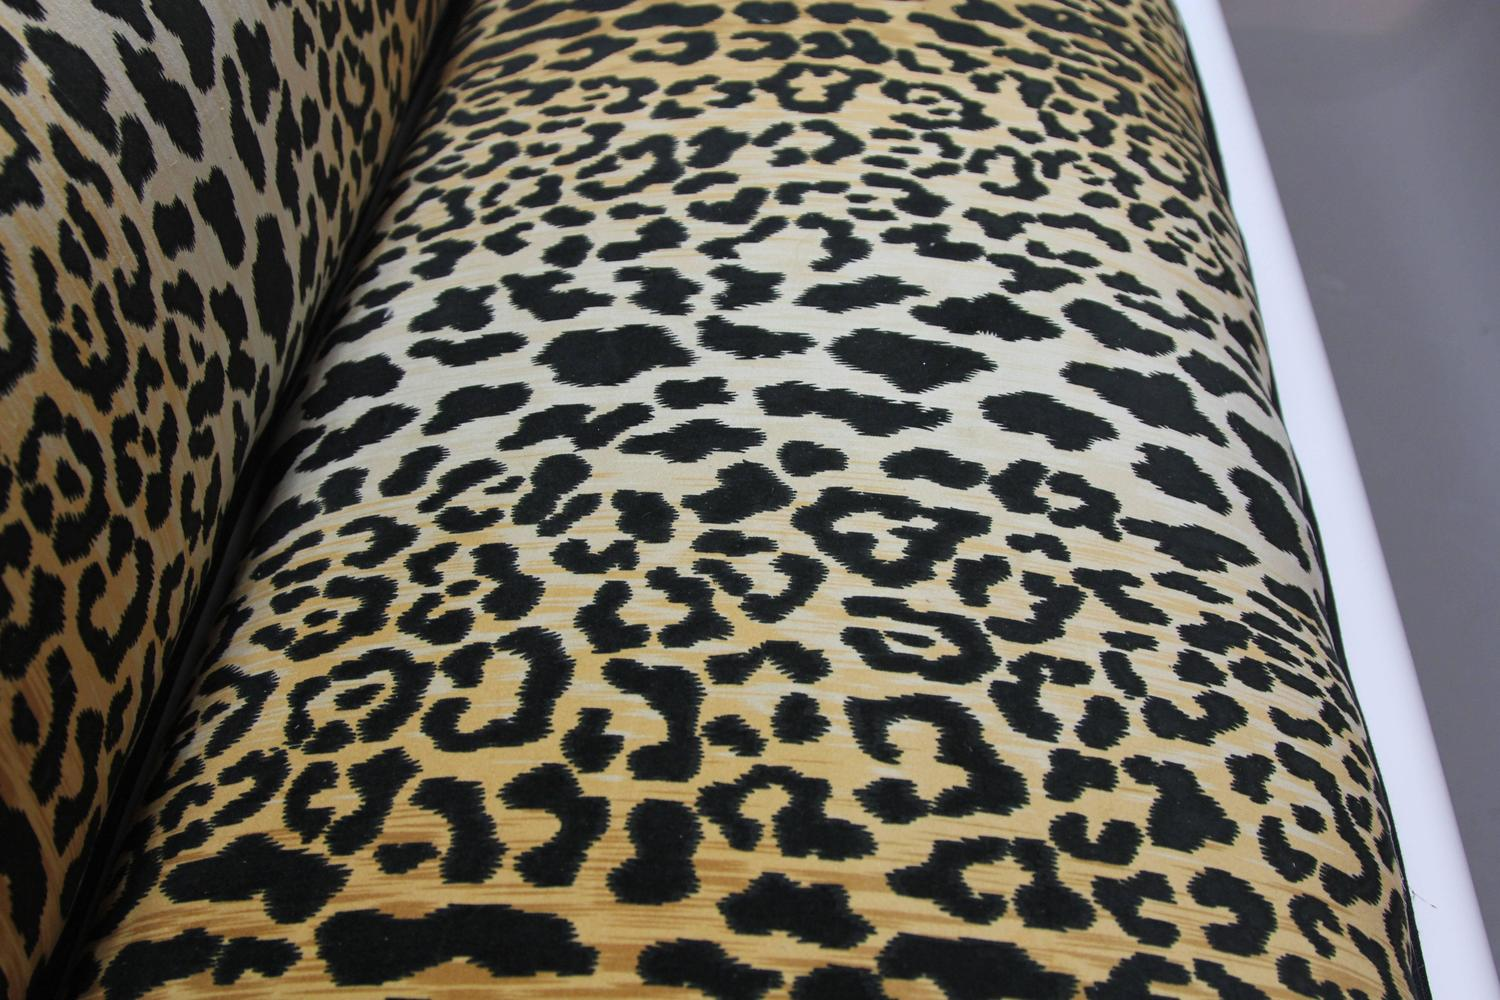 Newly Laquered And Upholstered Empire Style Sofa In Leopard Print At 1stdibs